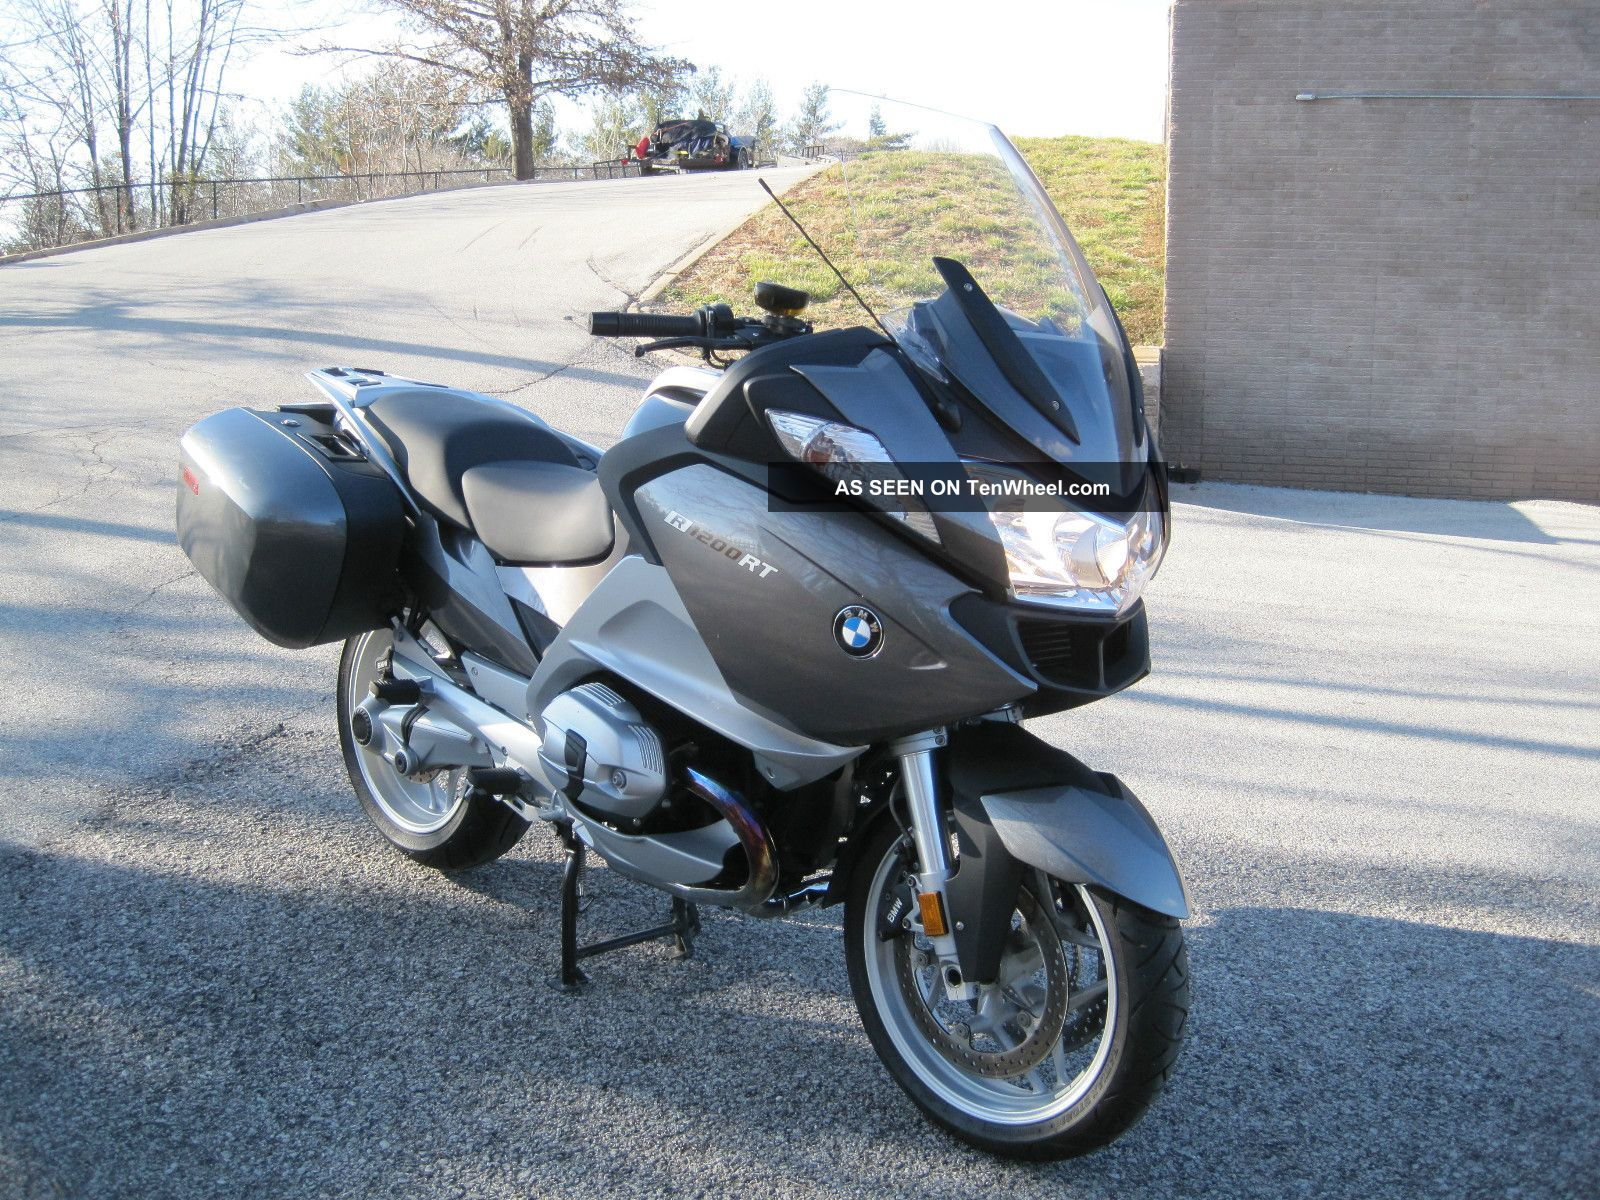 New bmw r1200rt deals north dakota travel deals dave sounds like you have a wonderful problem what new bike to buy i too am 60 the new 40 or so i hope and my first bmw was a 1997 r1100rt fandeluxe Images